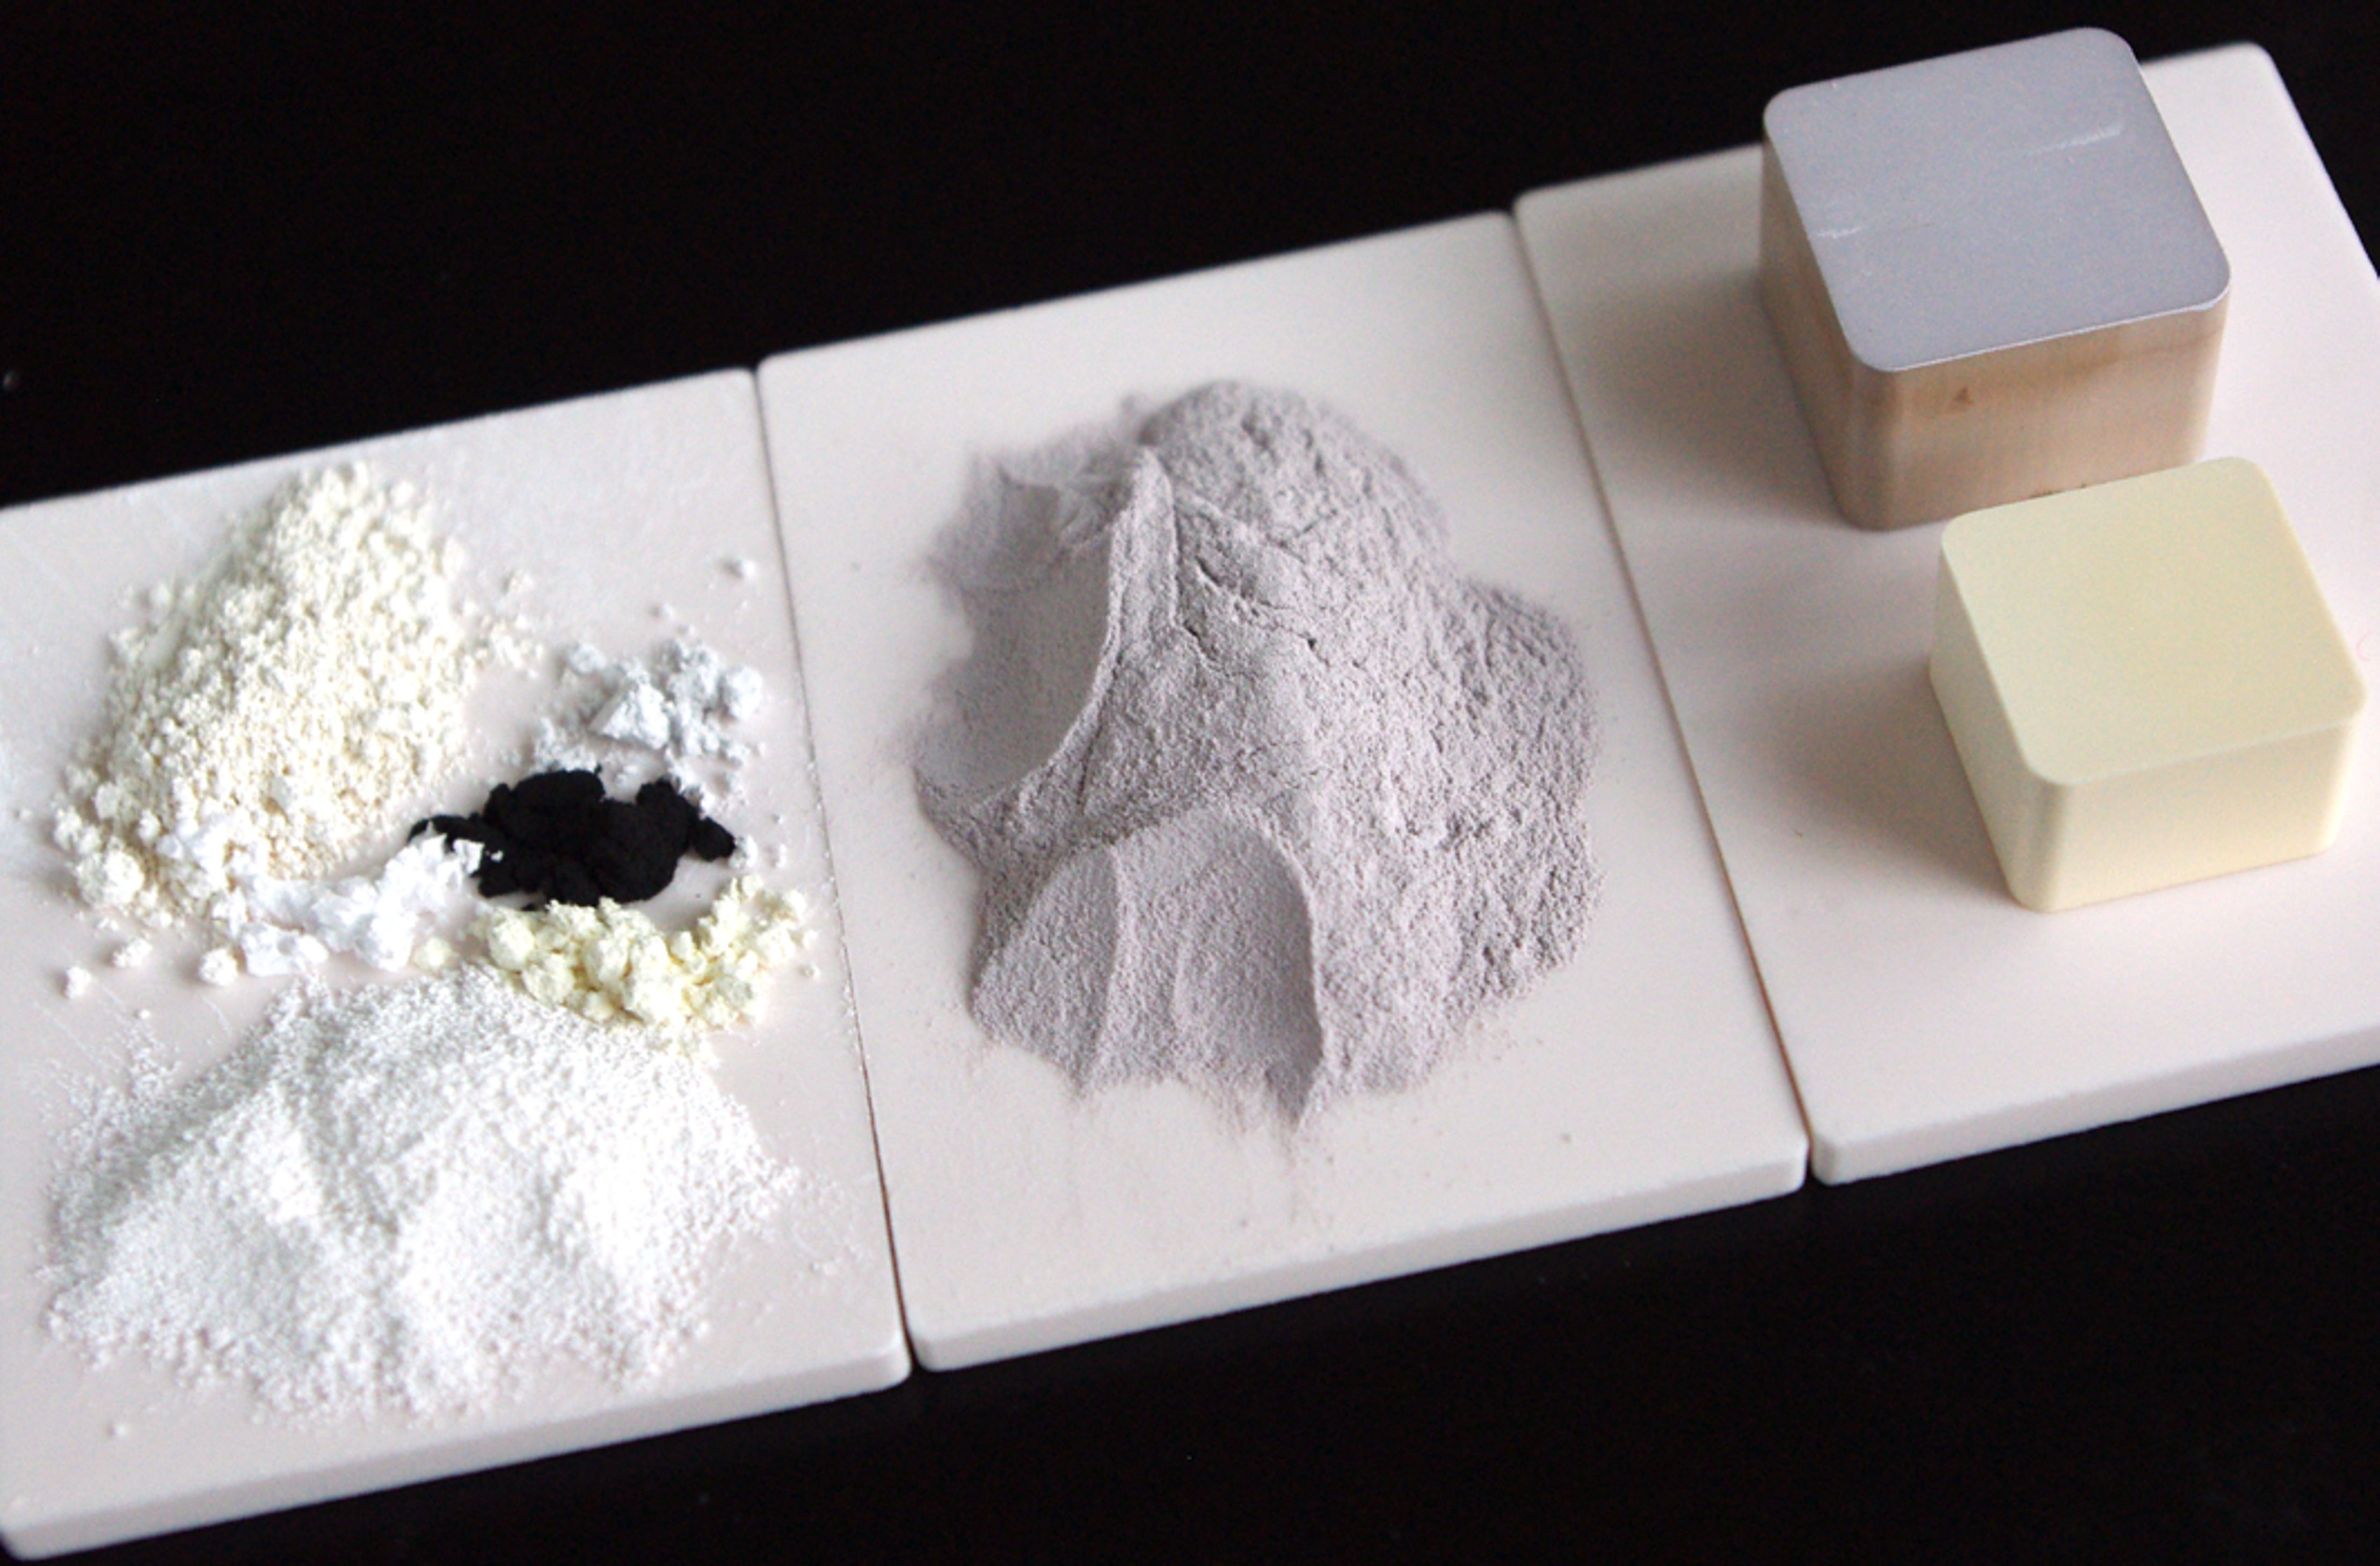 Ceramic powder technology